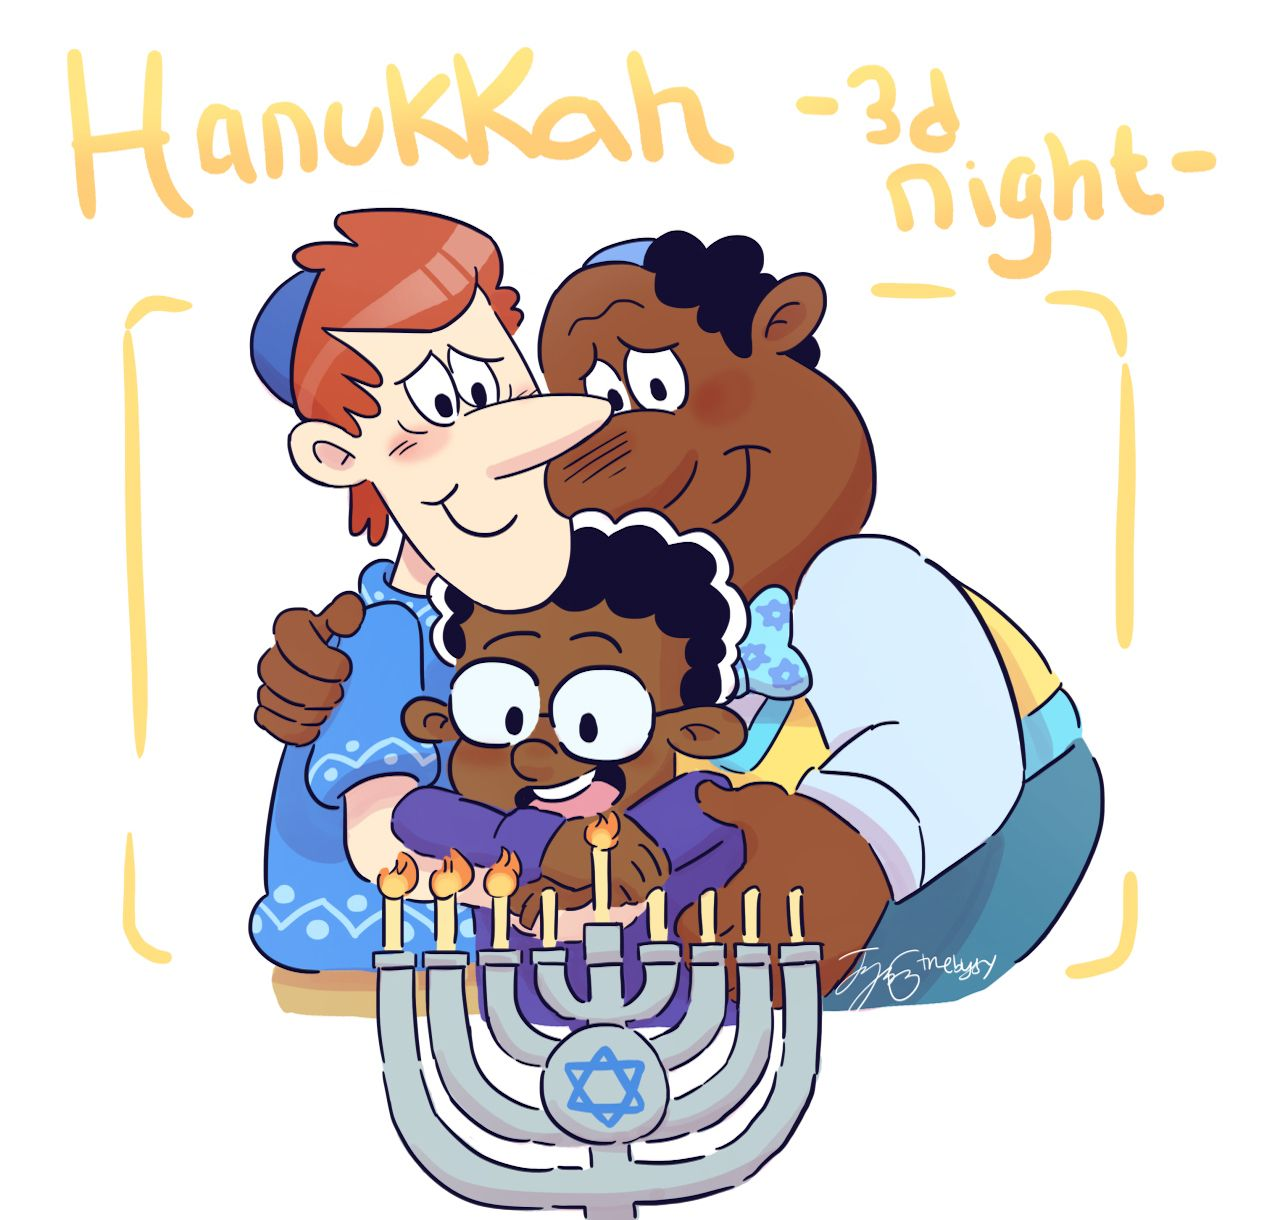 The Loud House: Harold McBride with Howard and Clyde, celebrating Hanukkah.  #theloudhouse #howardmcbride #haroldmcbride #clydemcbride